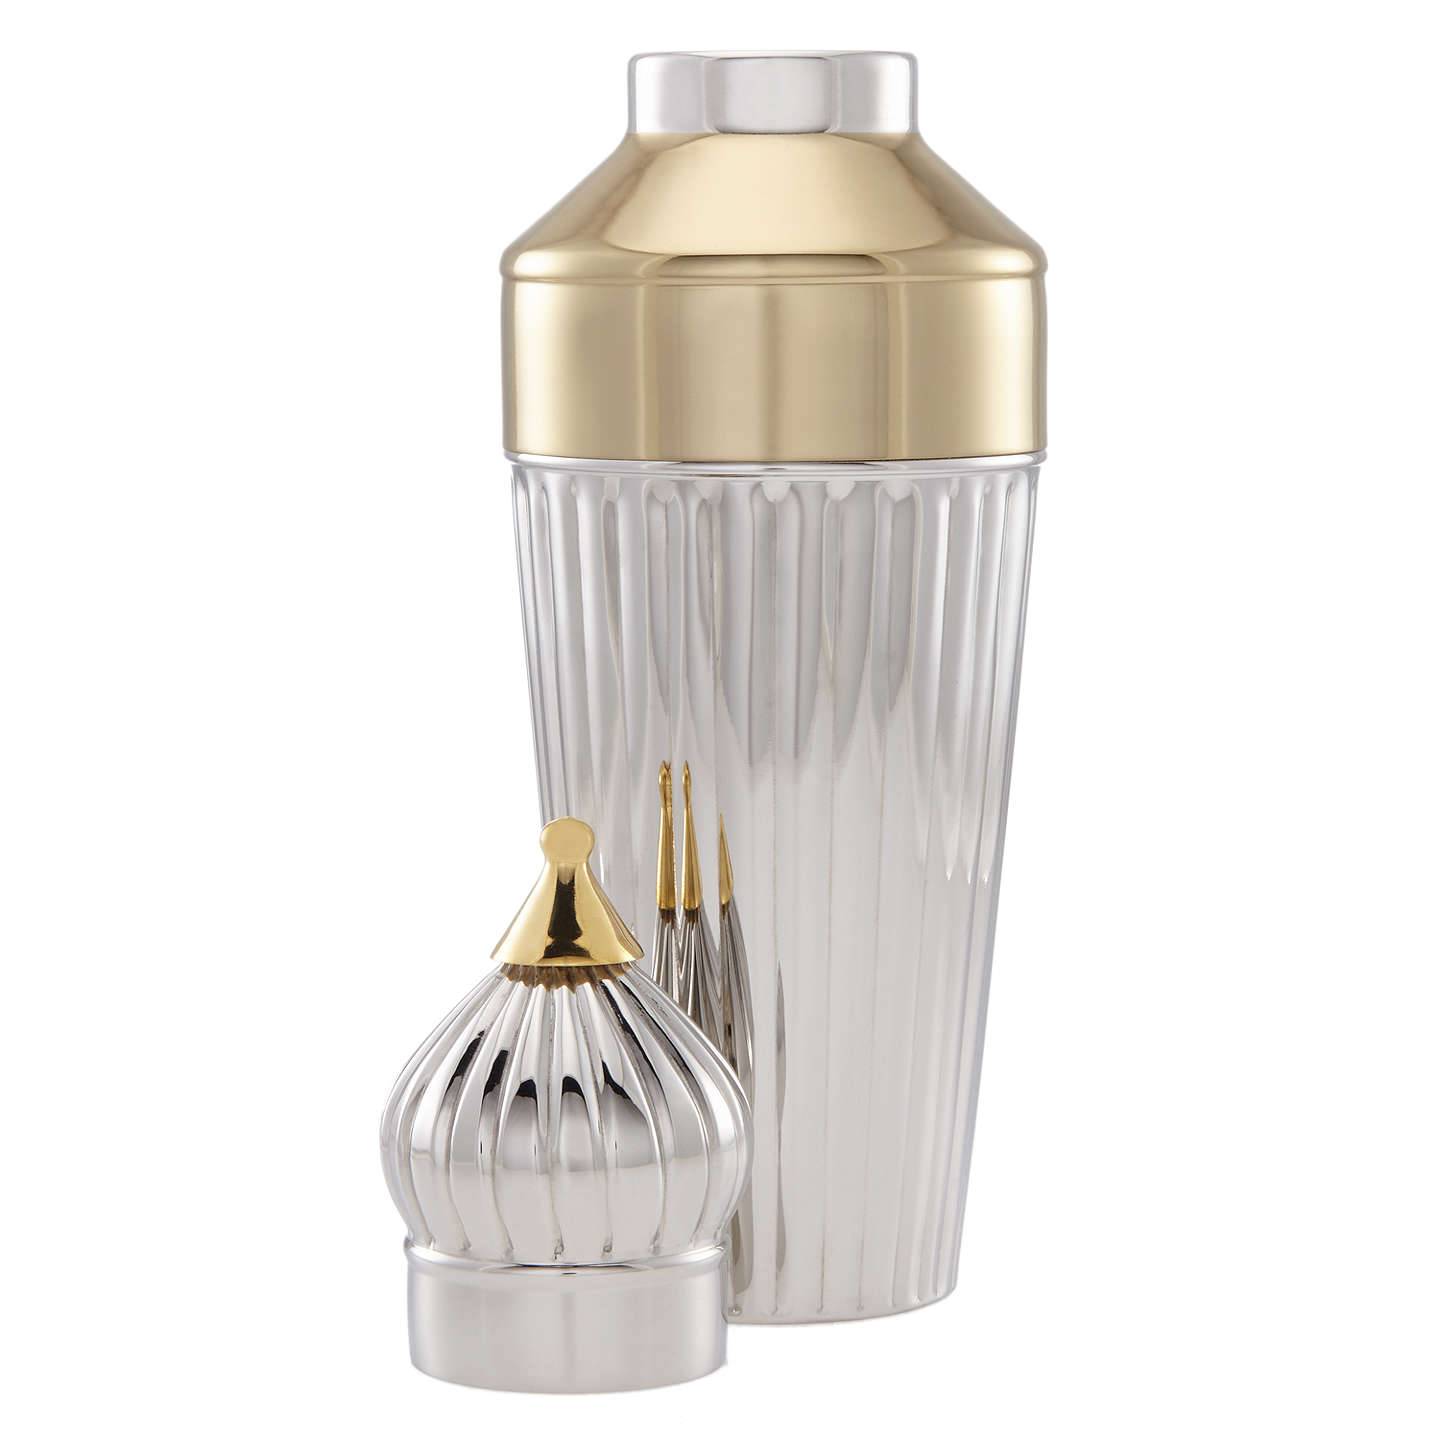 BuyJohn Lewis St Basil Cocktail Shaker, Silver, 600ml Online at johnlewis.com